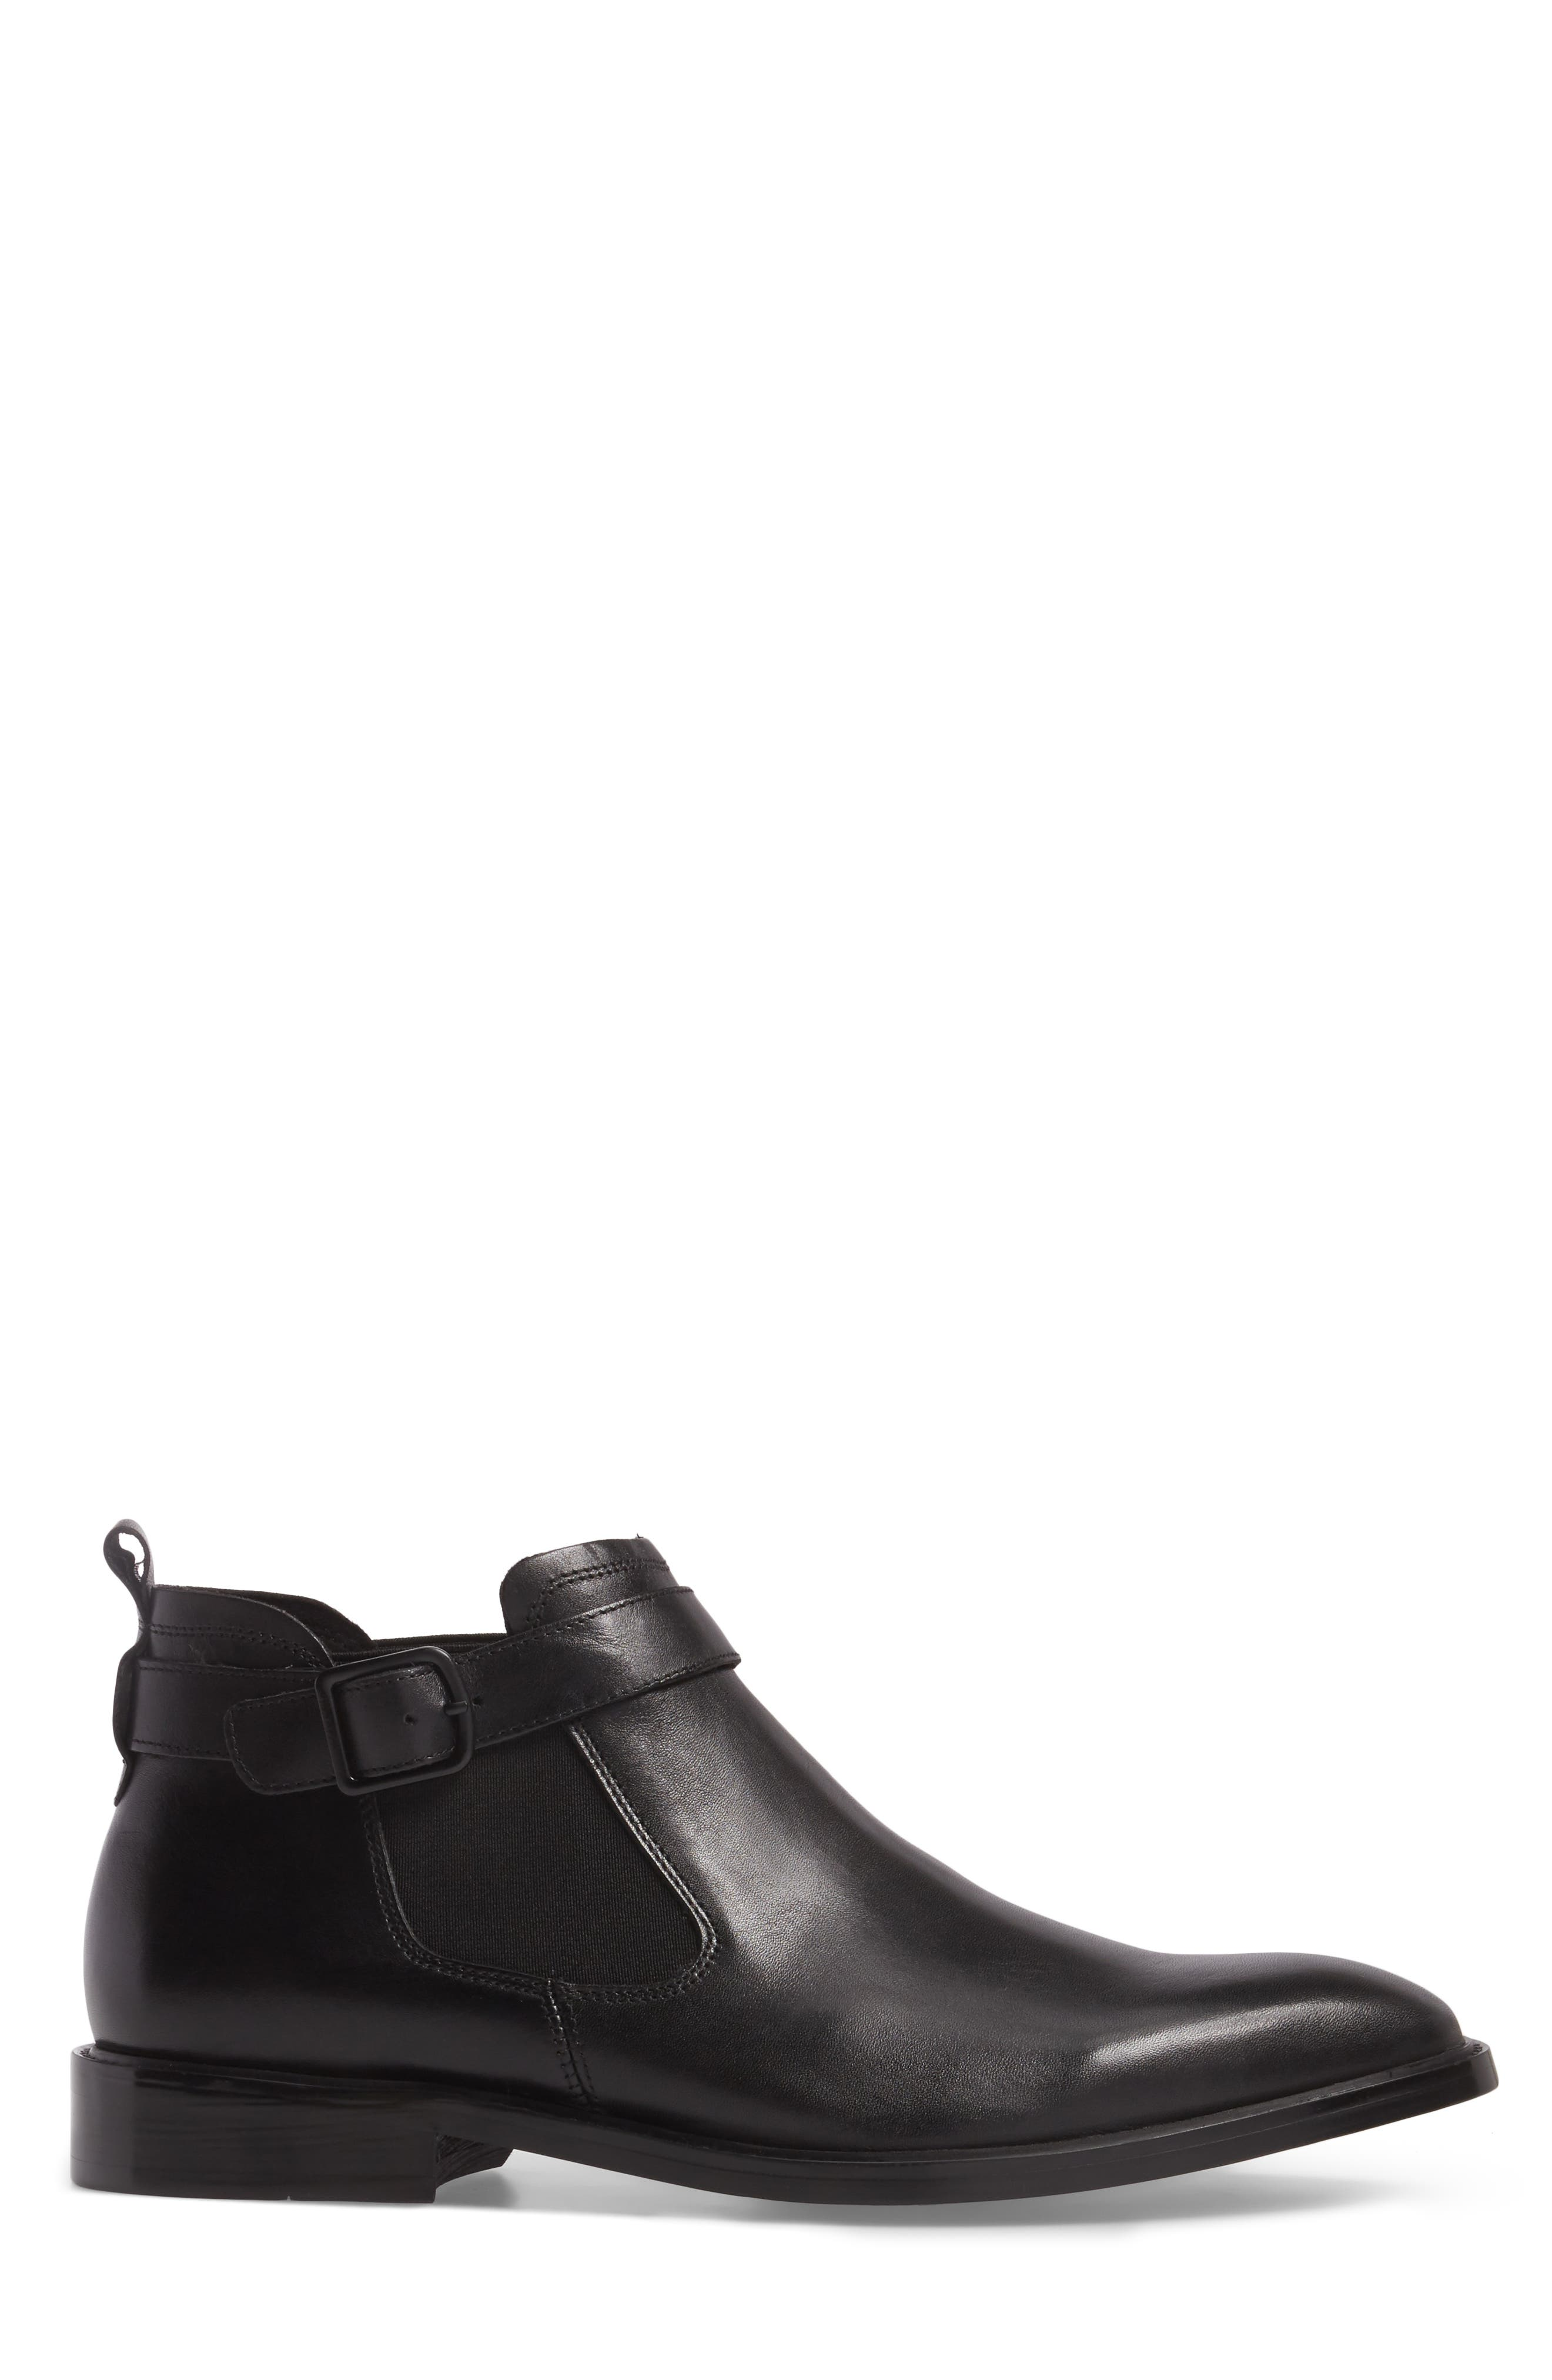 'Sum-Times' Chelsea Boot,                             Alternate thumbnail 3, color,                             Black Leather